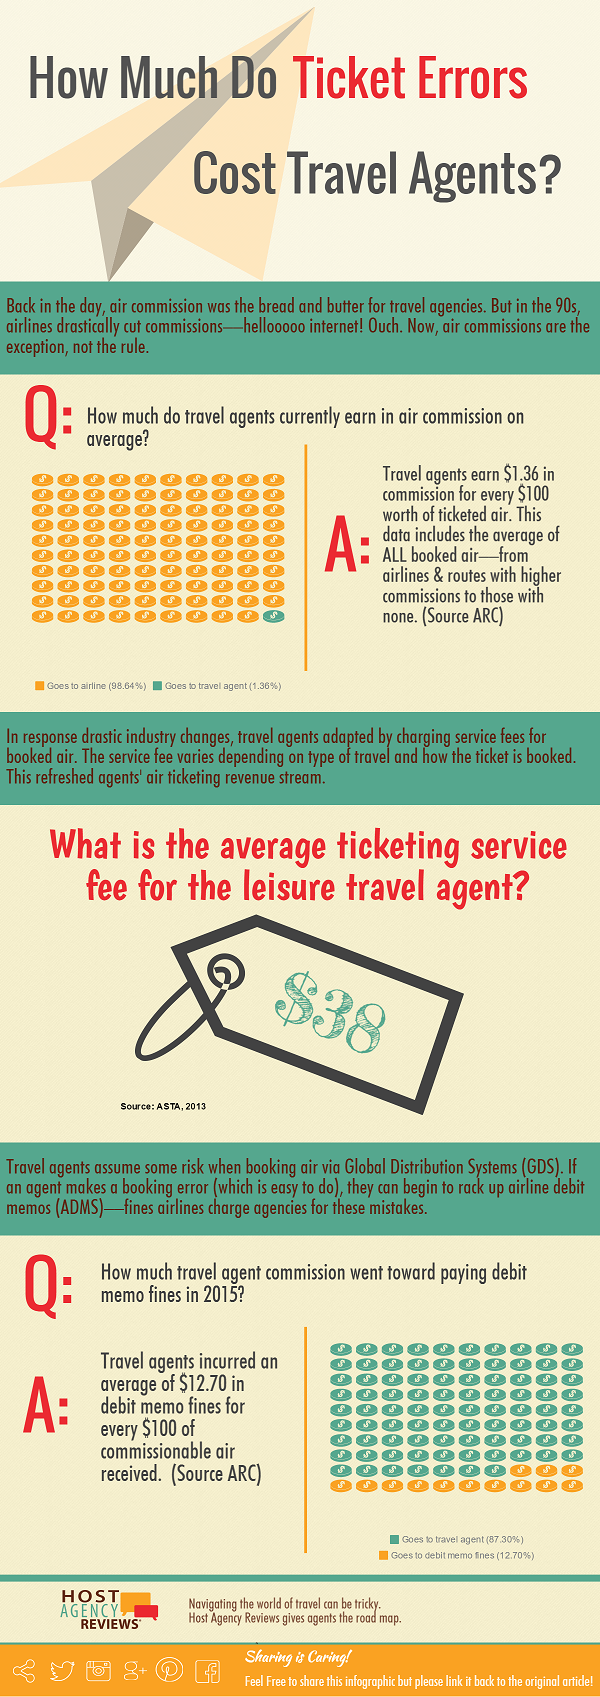 how much do airline ticket errors cost travel agents infographic